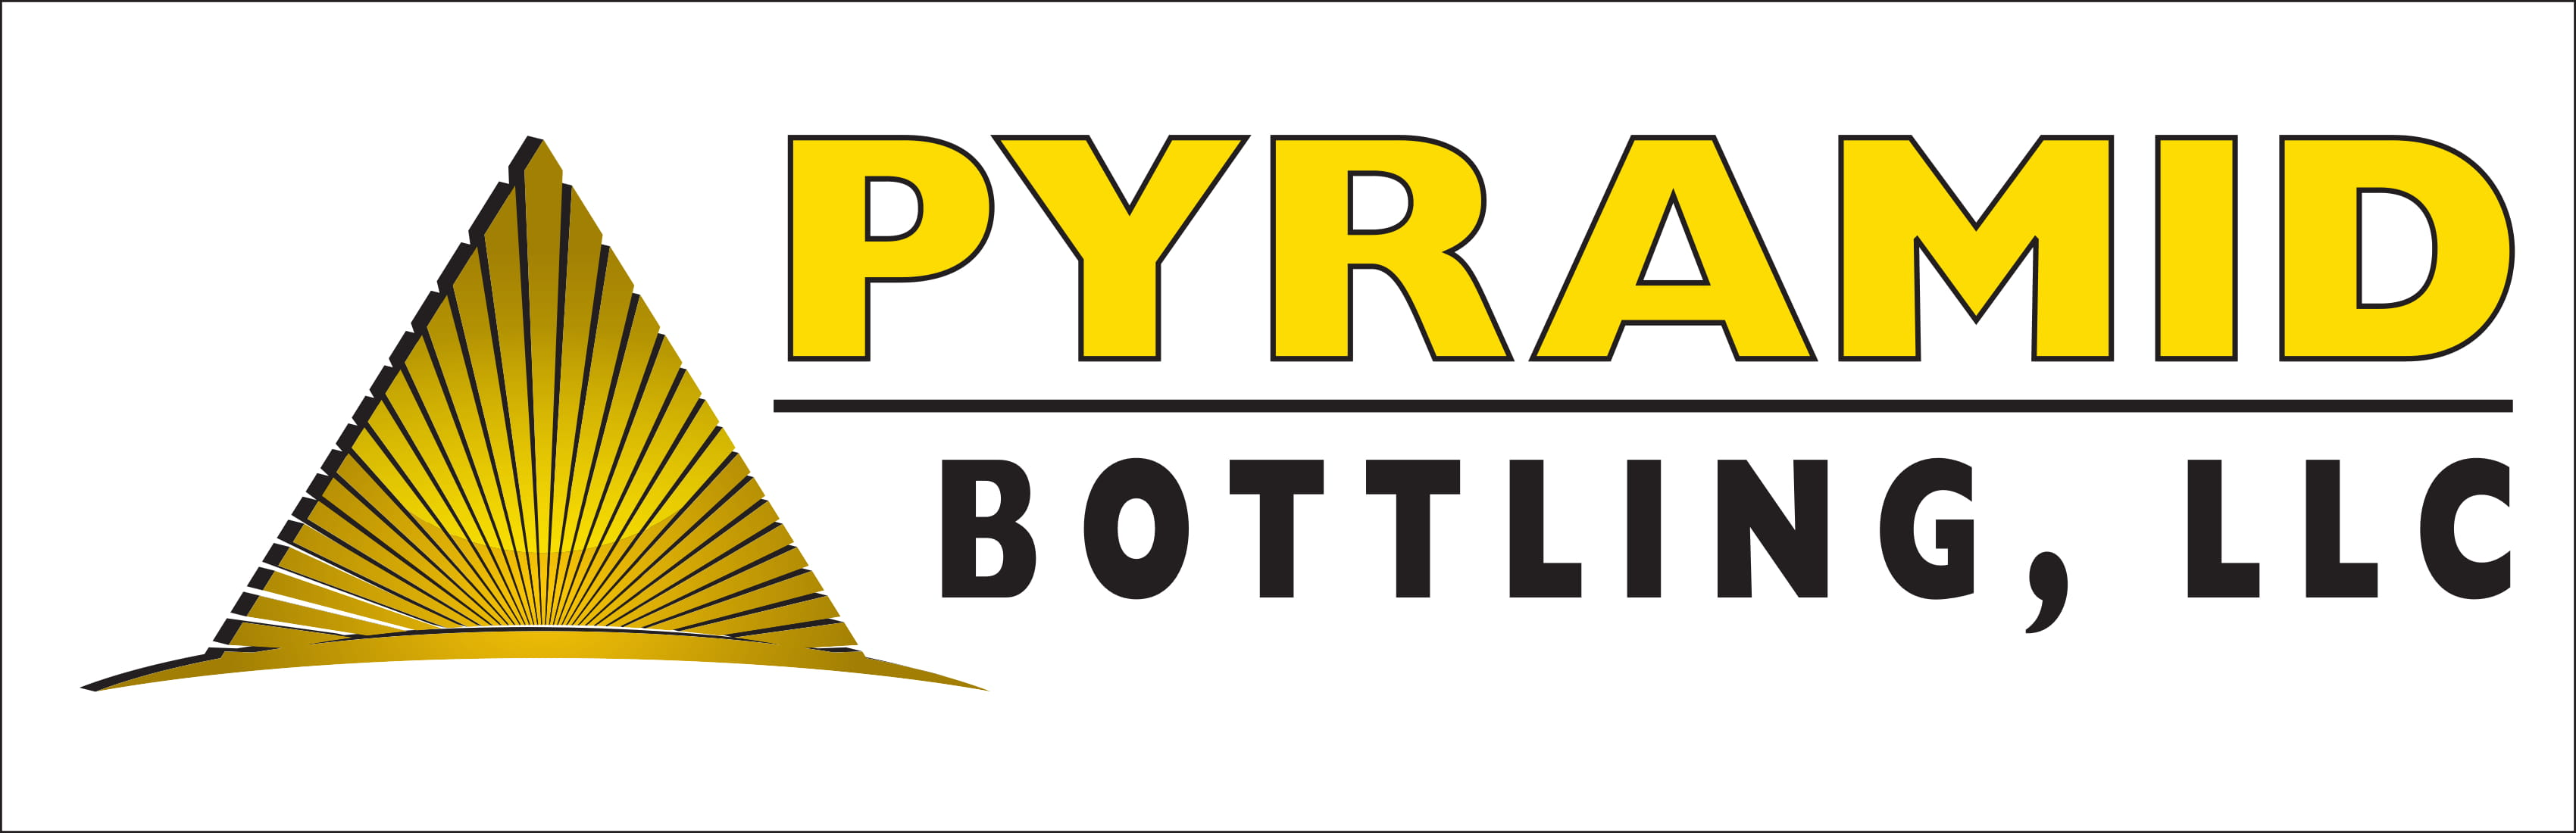 Pyramid Bottling, LLC Logo